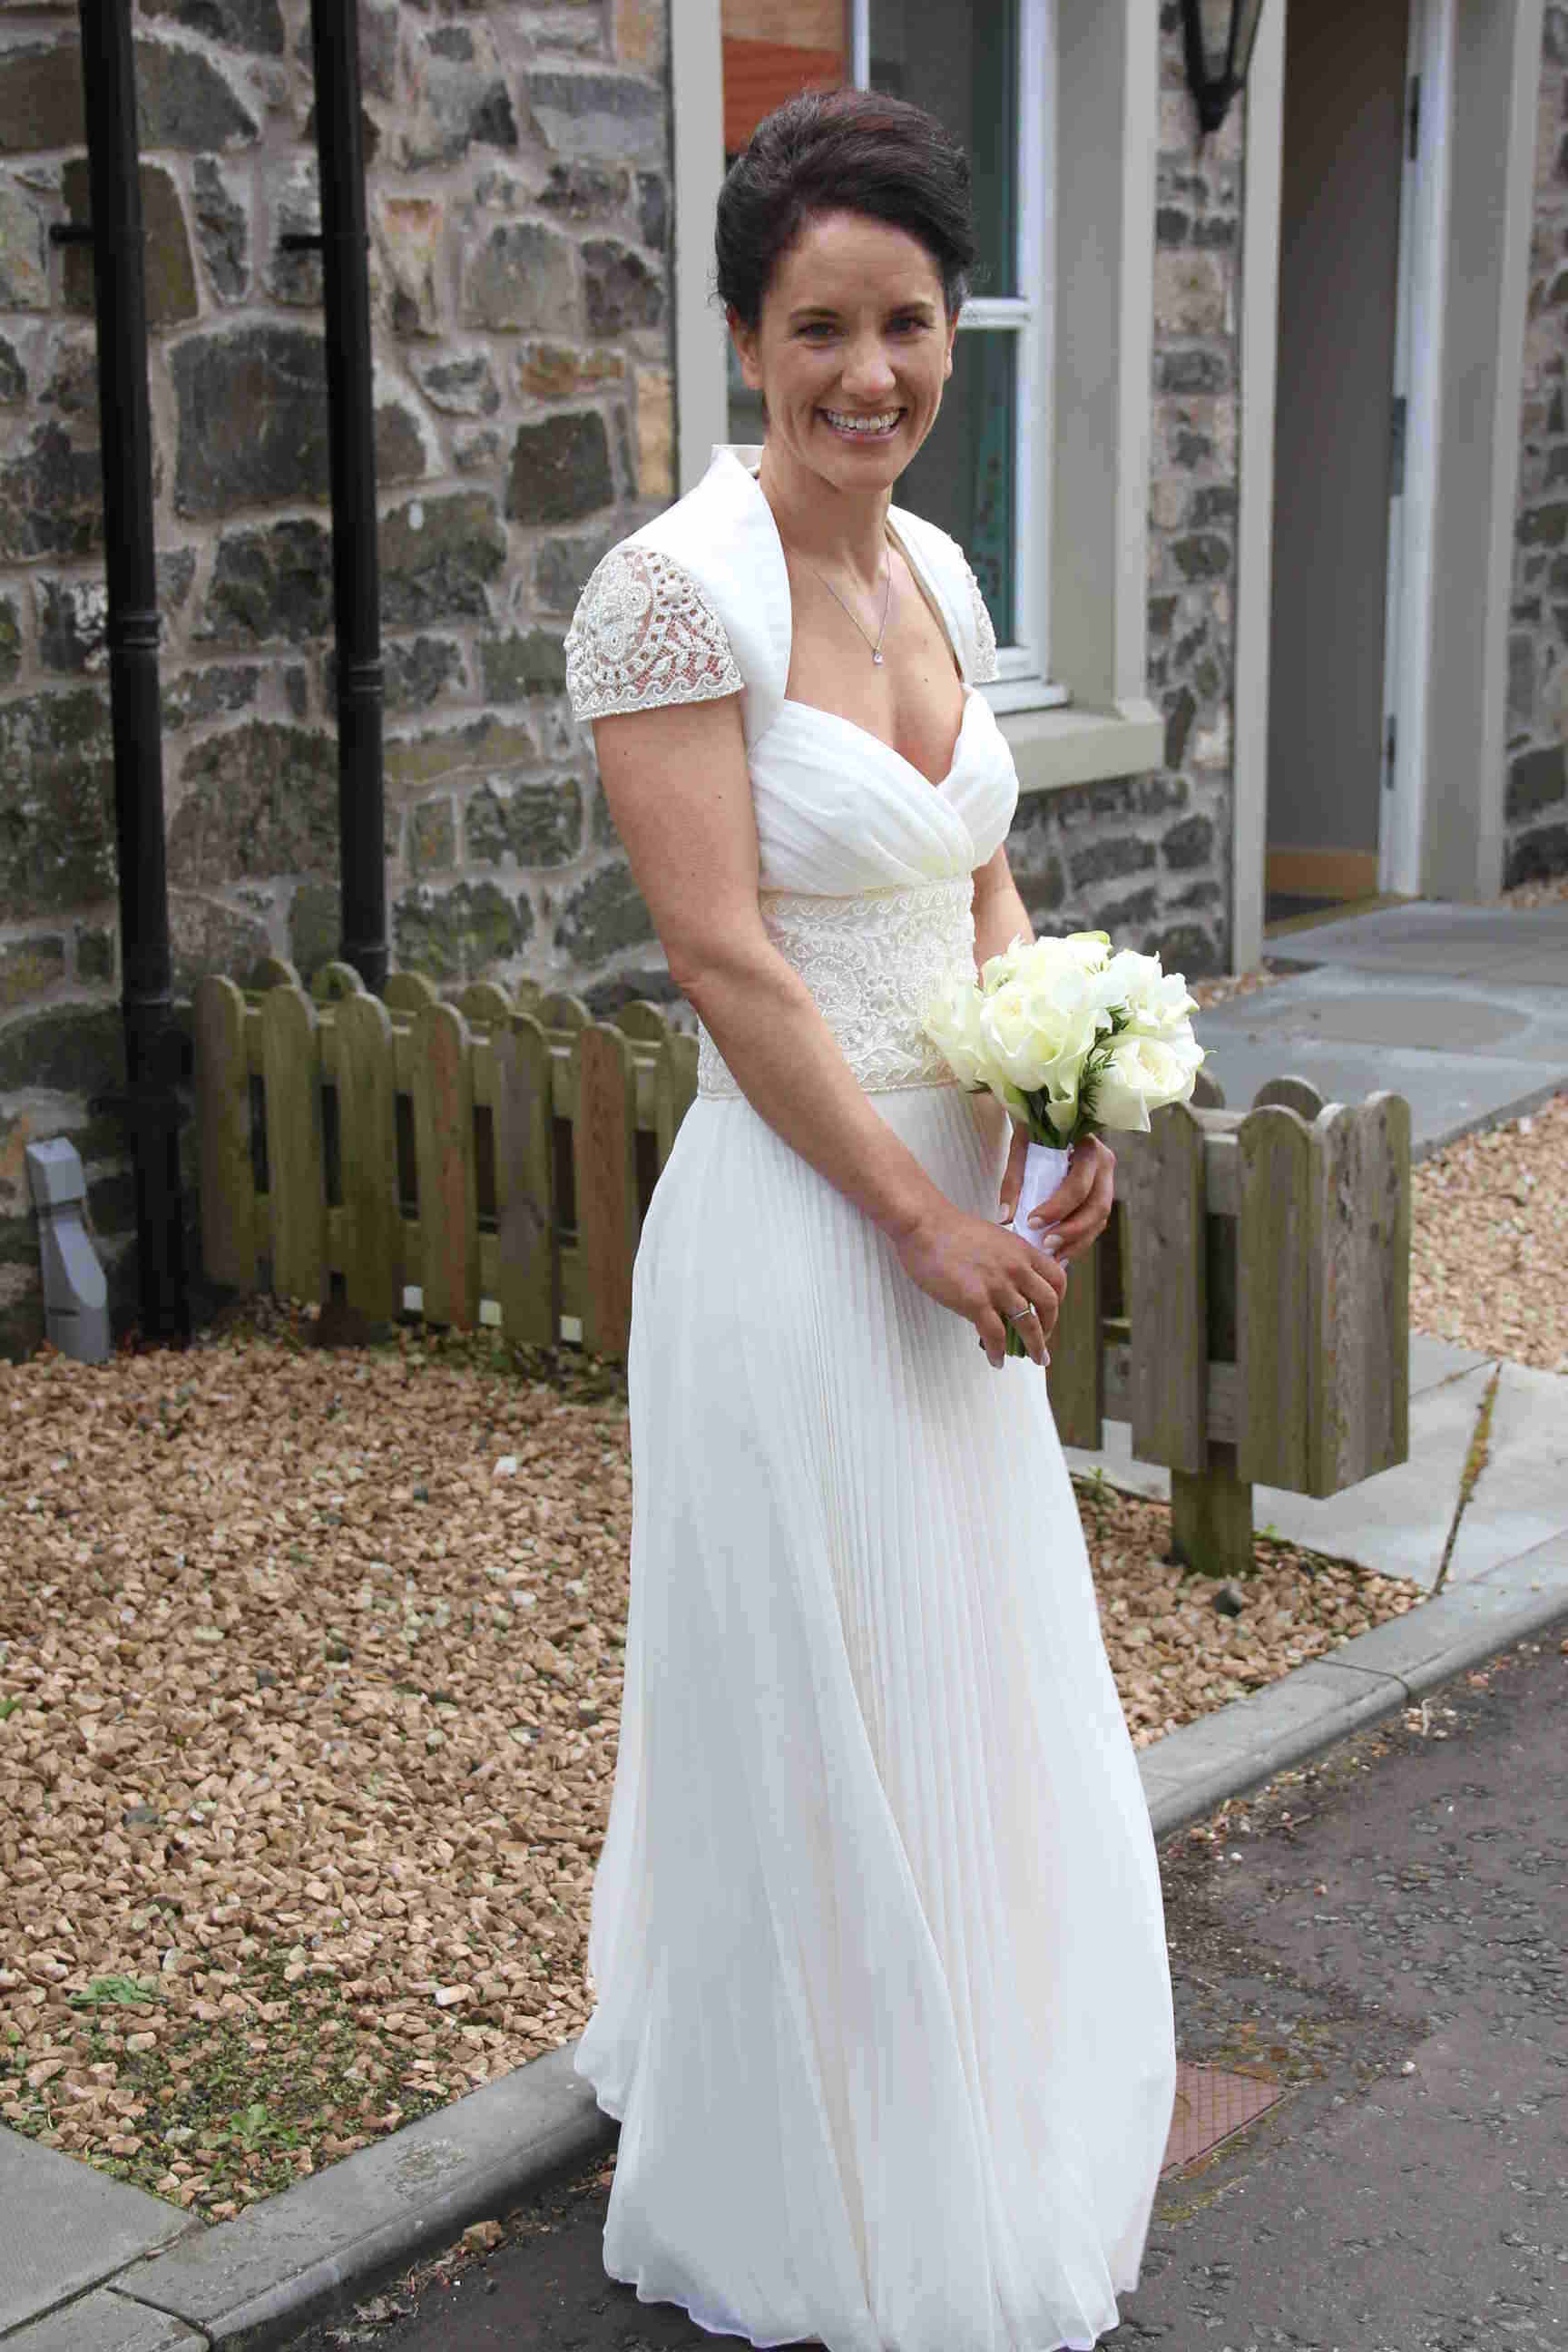 Kirsty Gillings wedding dress